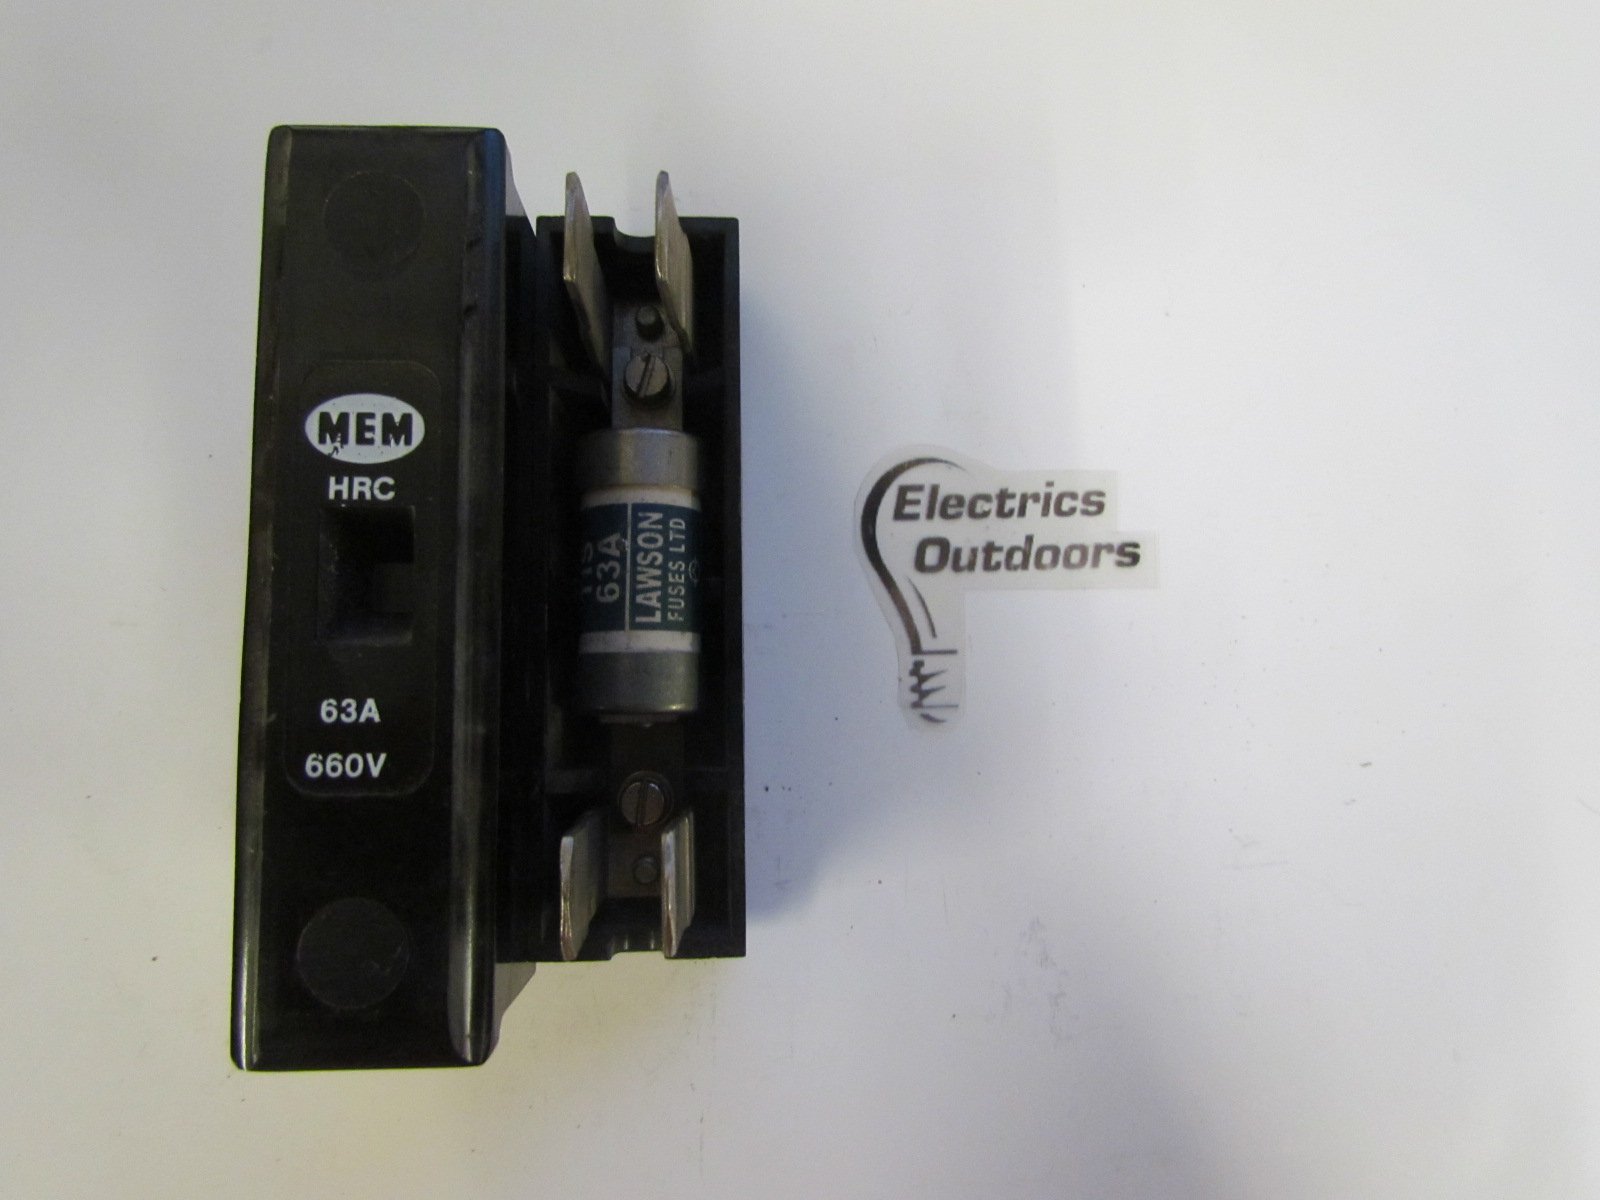 MEM BILL 63 AMP 660 V HRC FUSE CARRIER WITH 3408 Item Condition USED Sorry We Currently Have No Stock